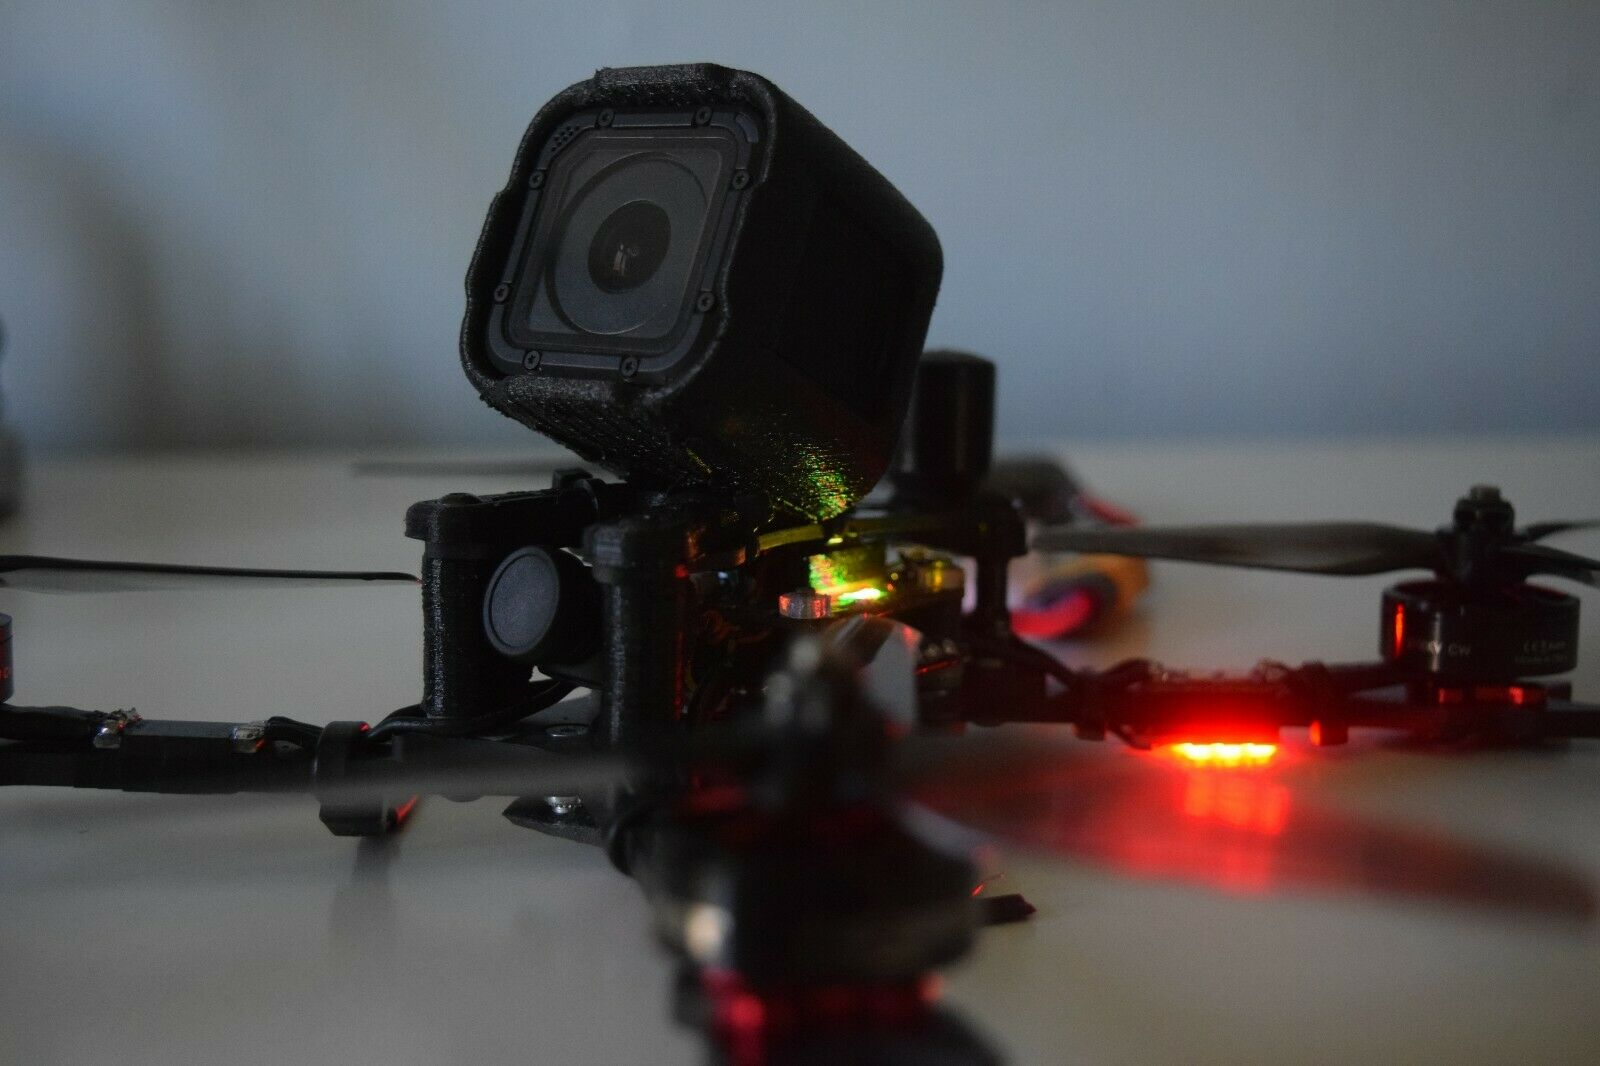 FPV Drone Building Service UK seller Builds and Repairs Drone Racing/Freestyle